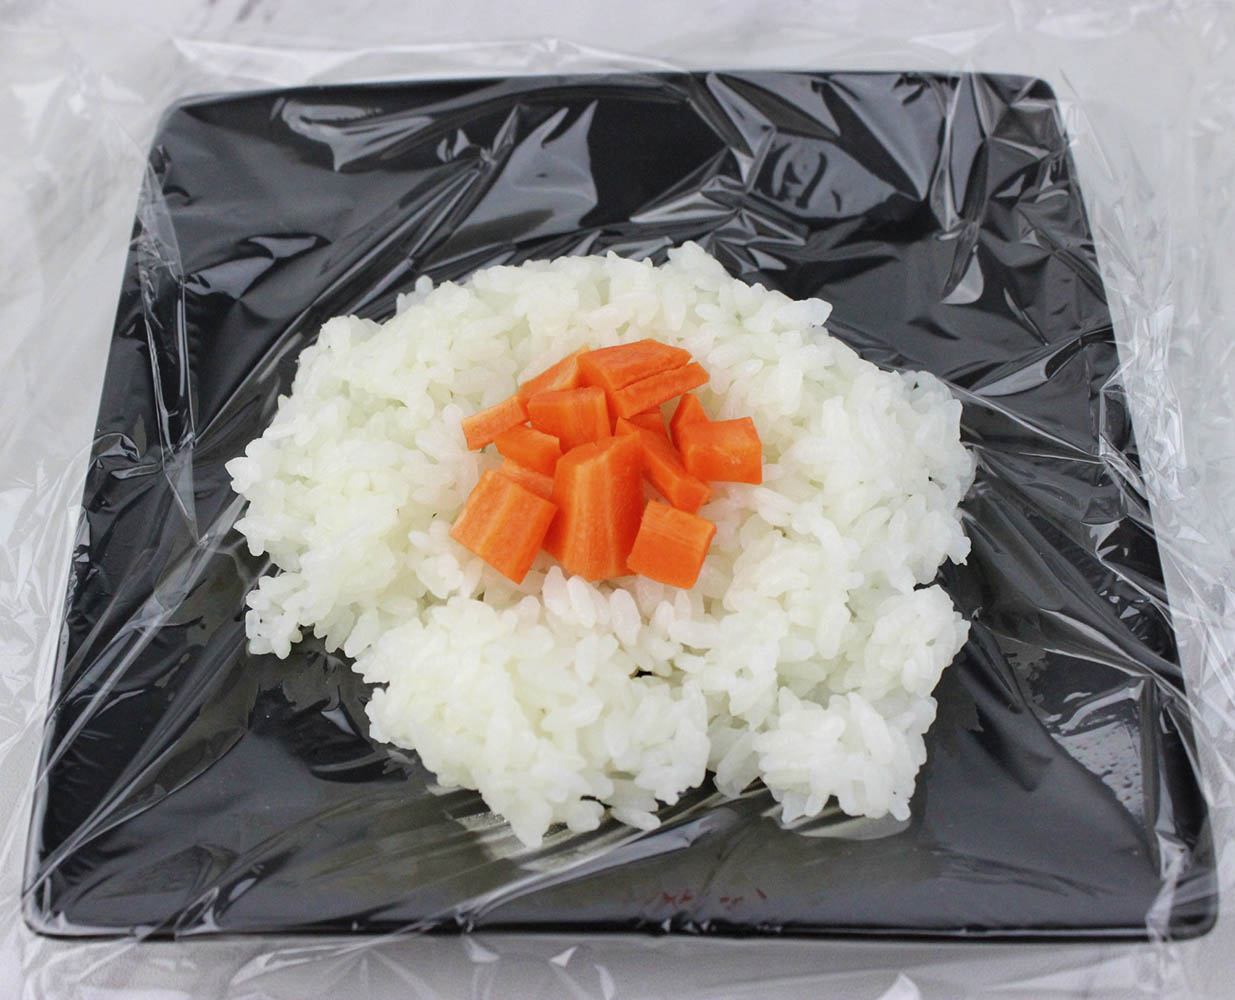 Kylo Ren rice ball ingredients